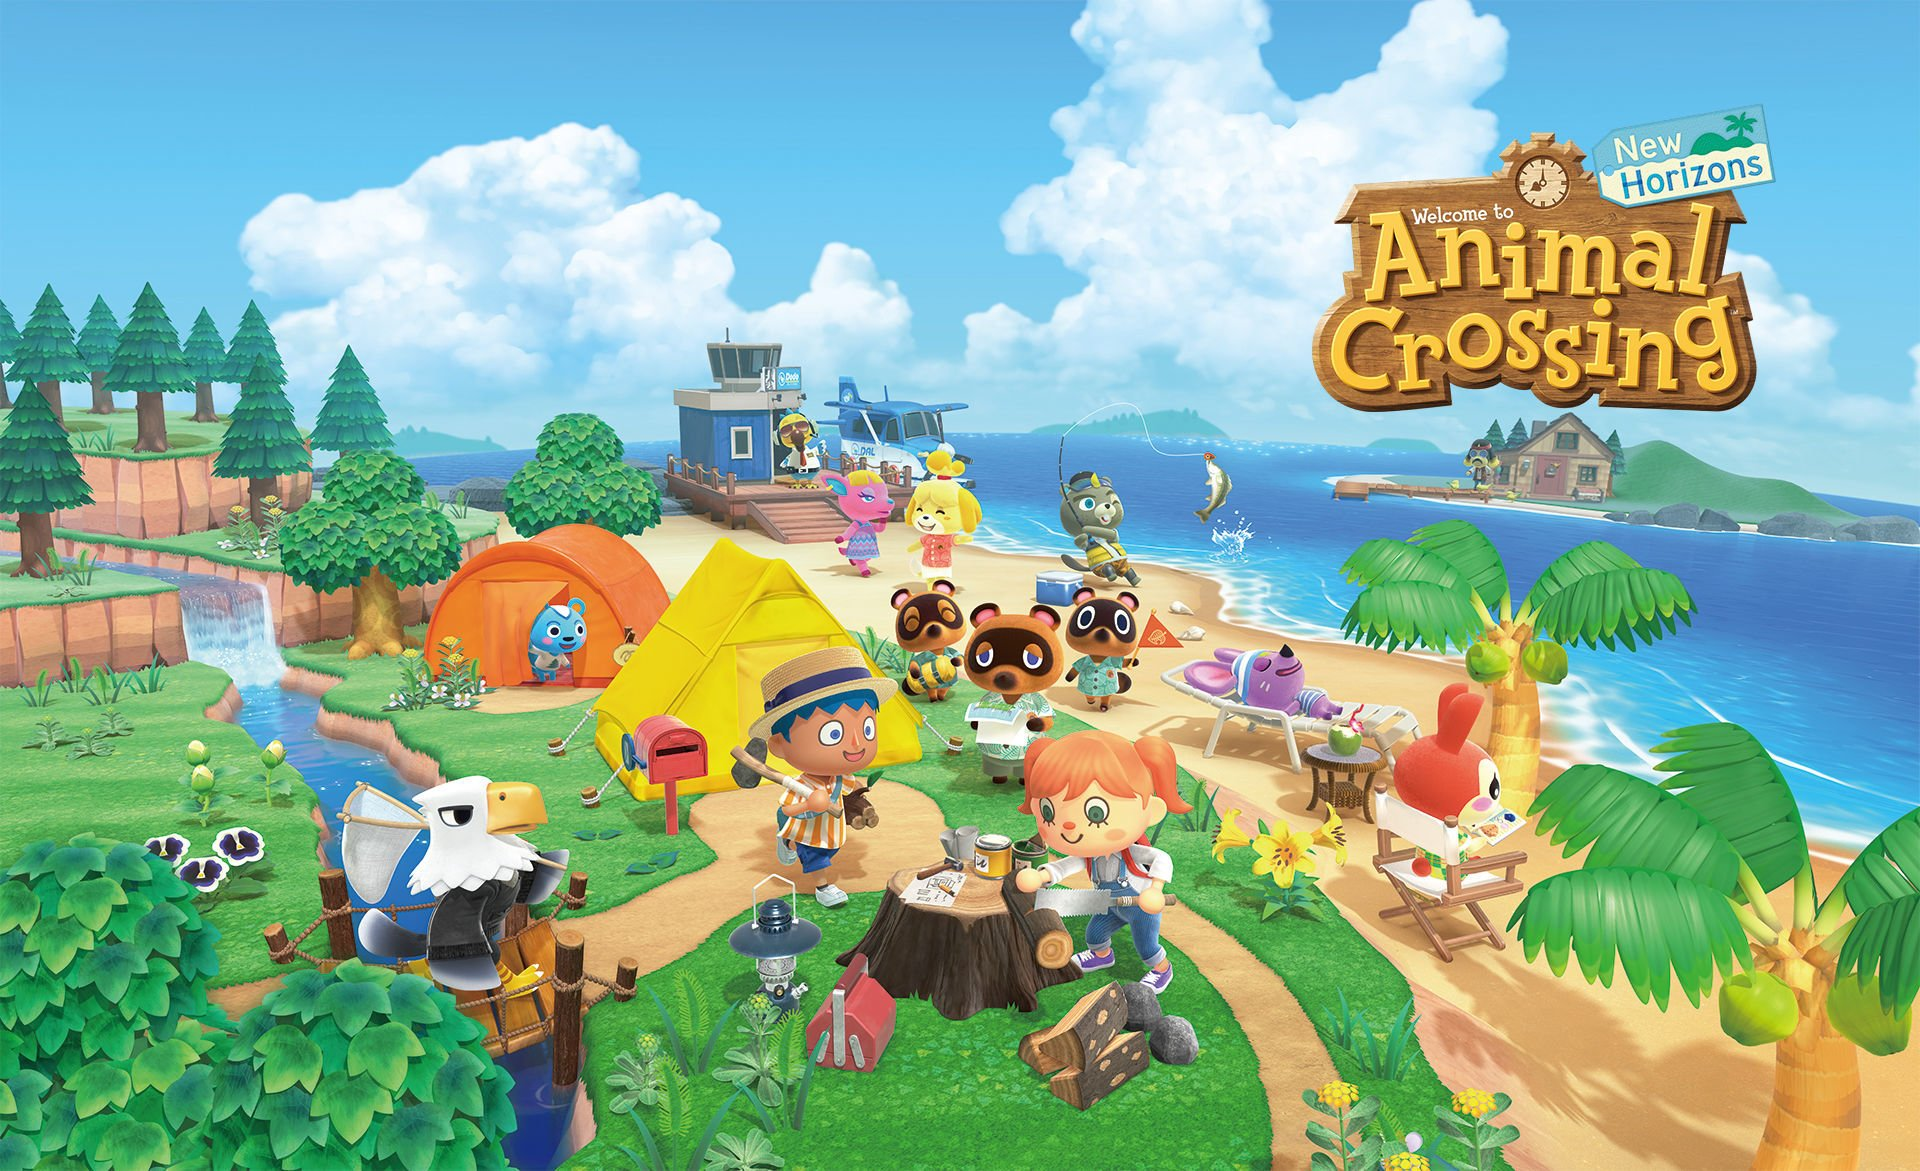 Animal Crossing: New Horizons – Why Aren't My Villagers' New Houses Being Built?